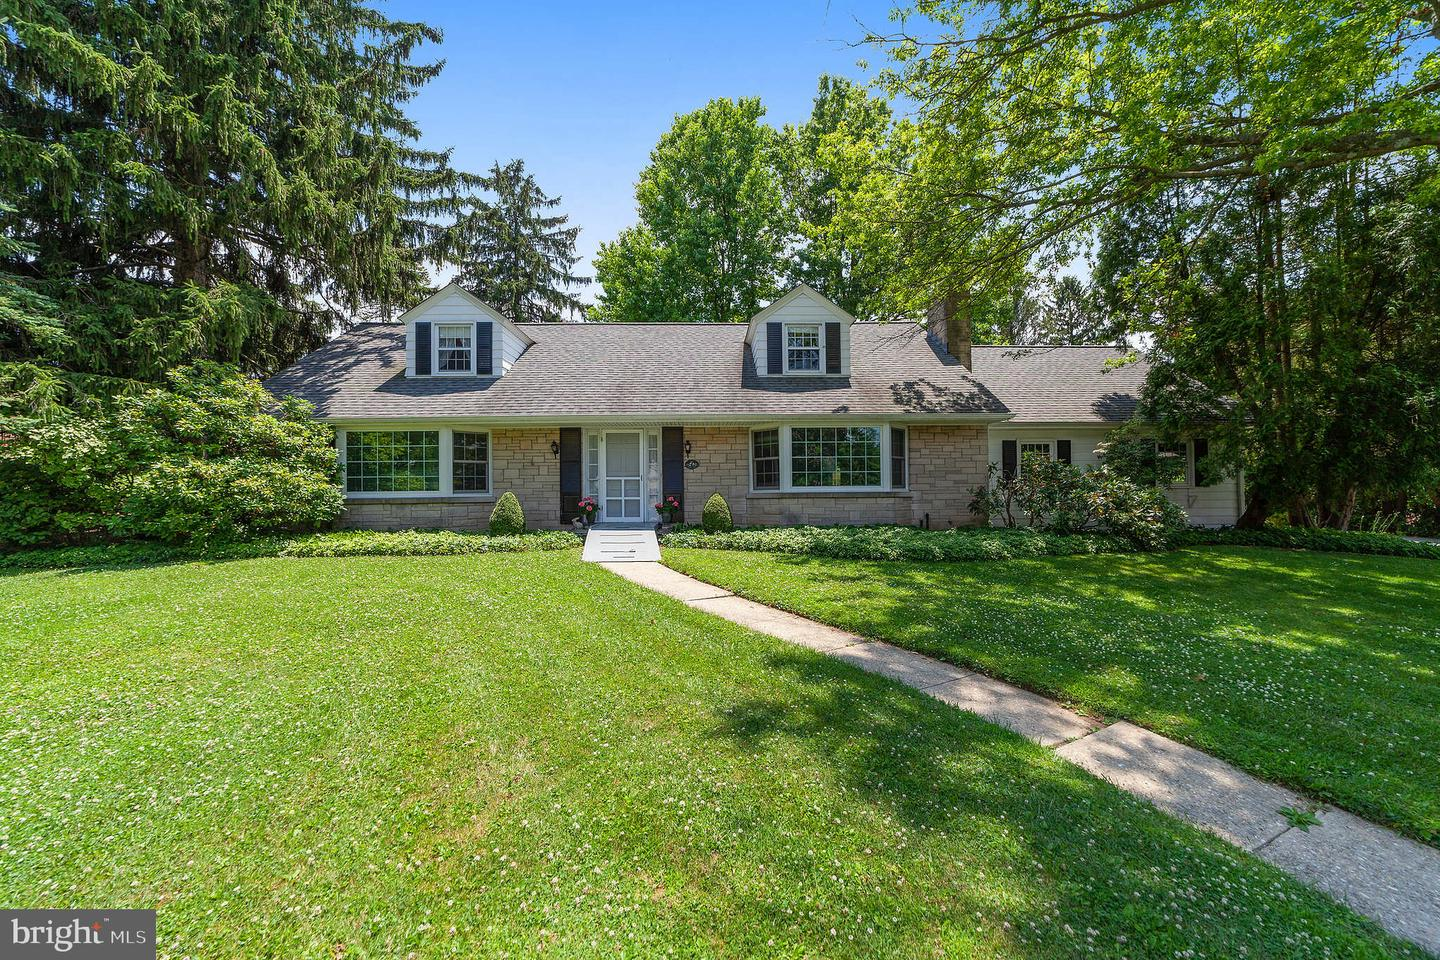 982 S Penn Drive West Chester, PA 19380